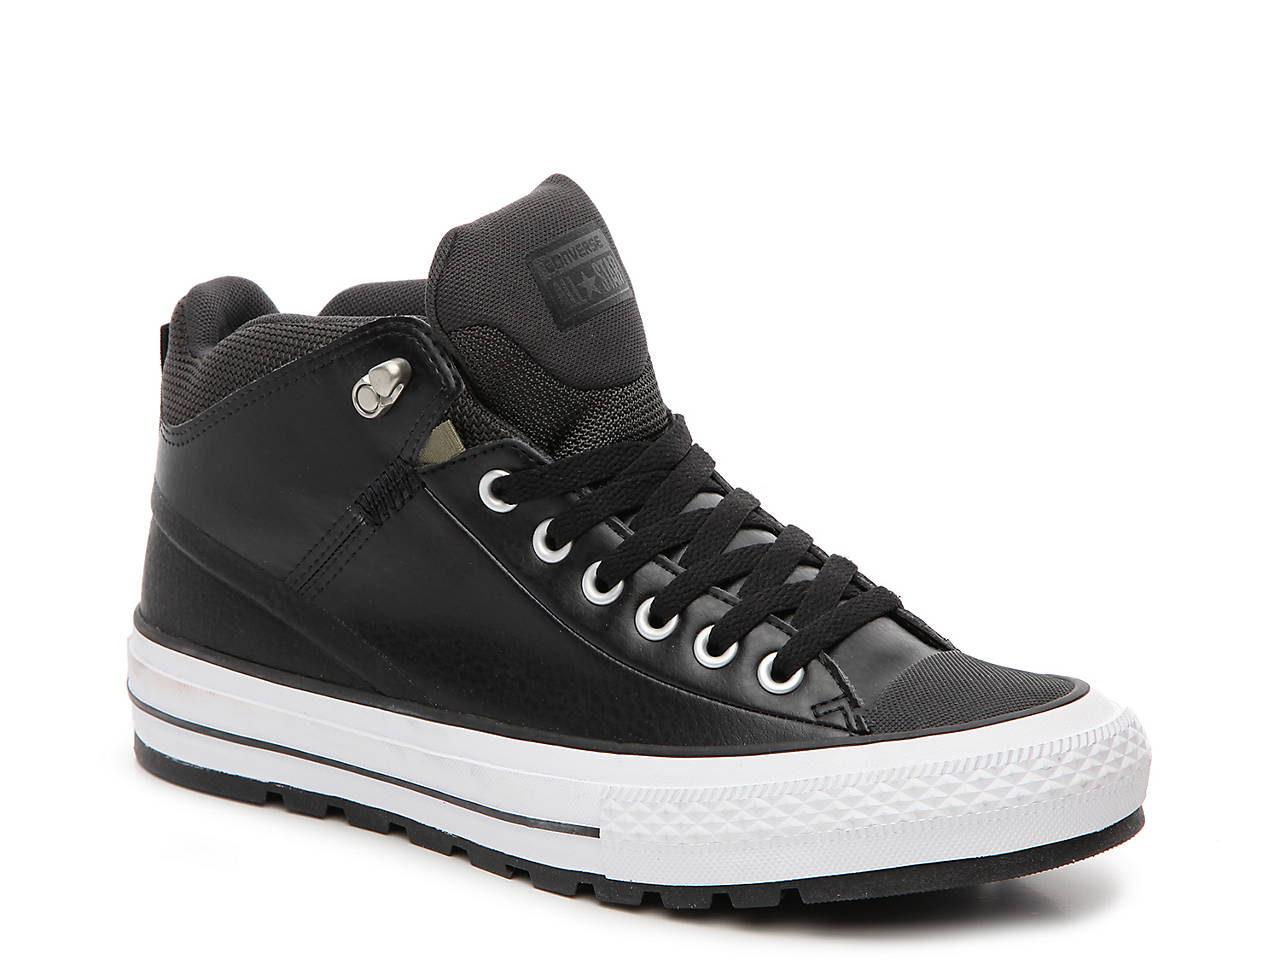 a2ee0e519e2 Converse Chuck Taylor All Star Hi Street High-Top Sneaker Boot ...